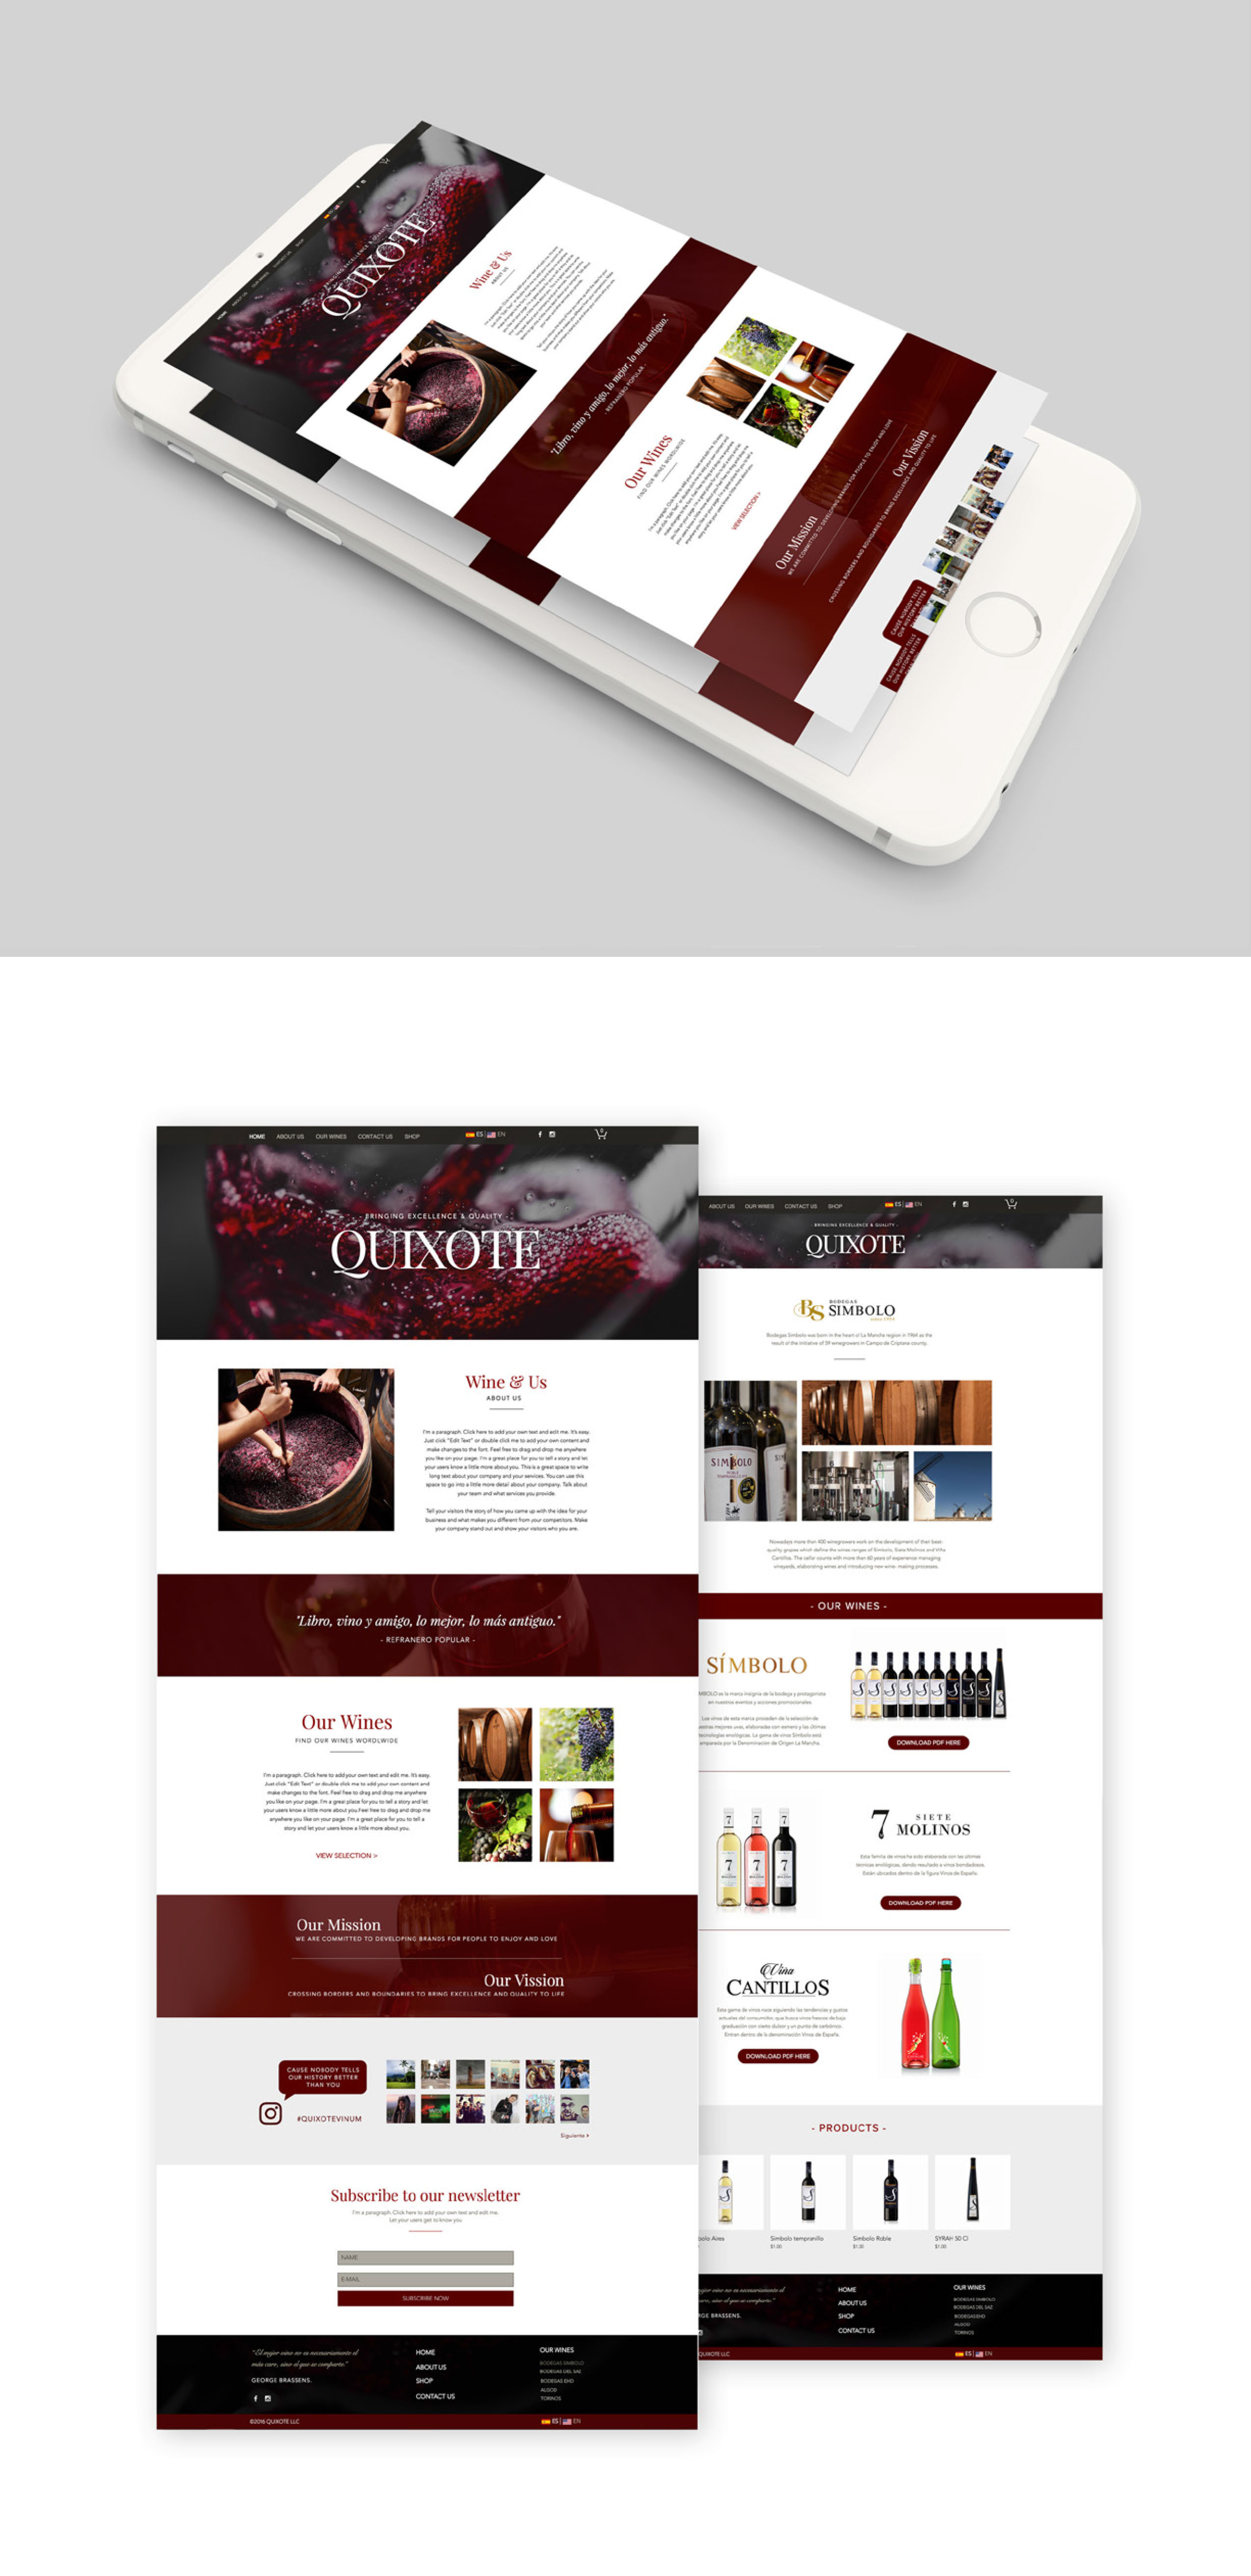 Quixote Vinum Website design